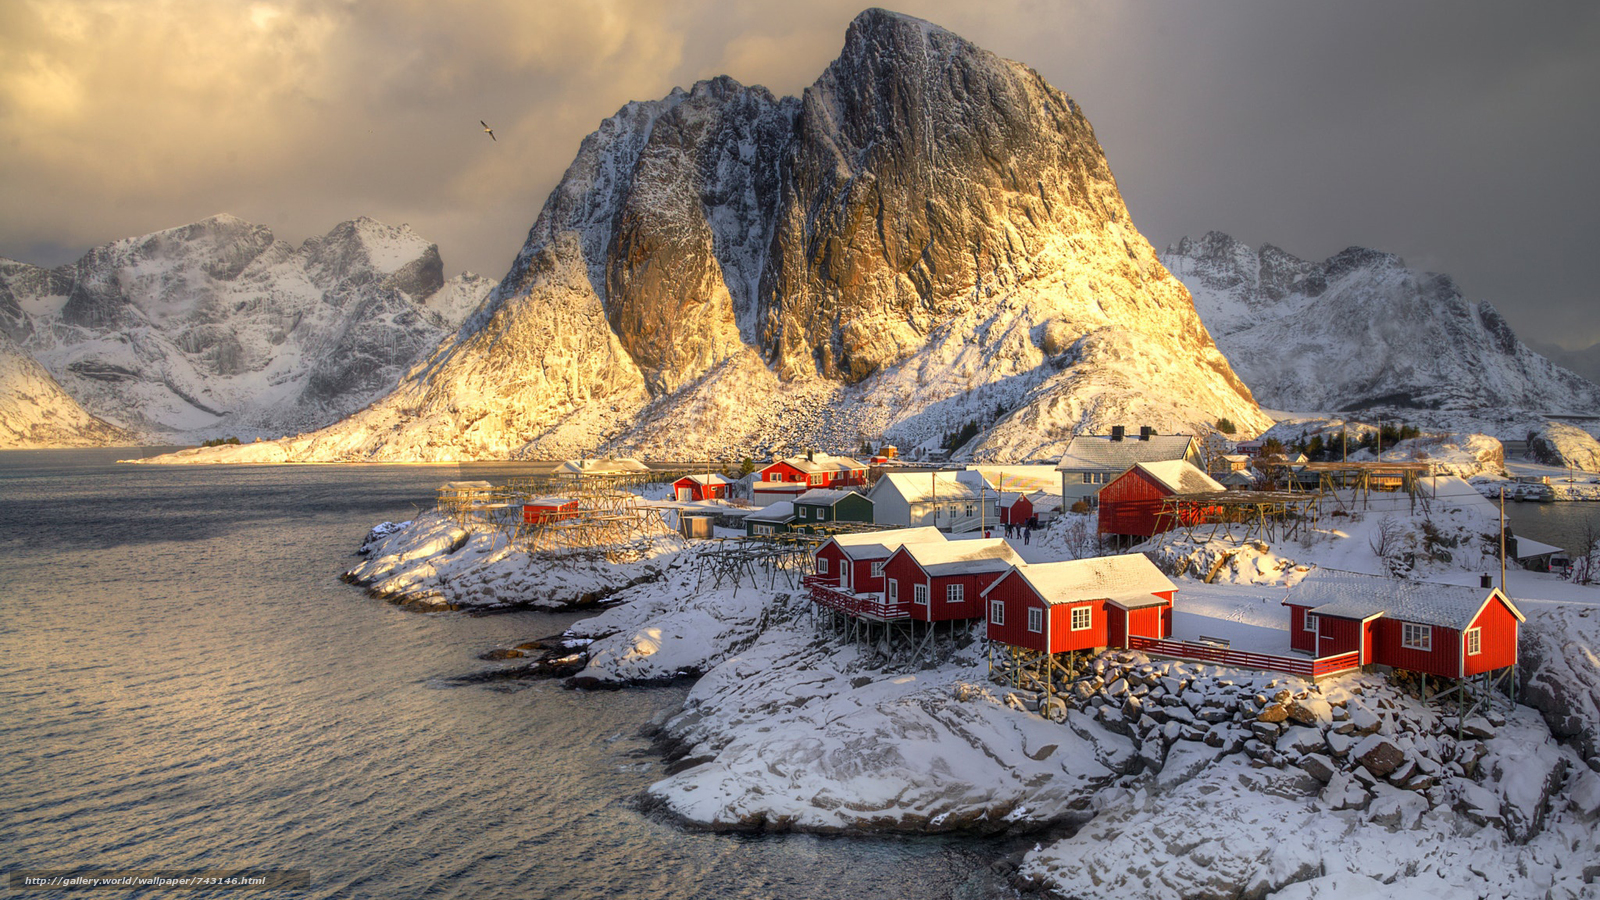 Lofoten, Norway, Lofoten, island, winter, snow, the mountains, rock, houses, water, sky, landscape, nature, view, lighting, Mainly cloudy, Coast, clouds